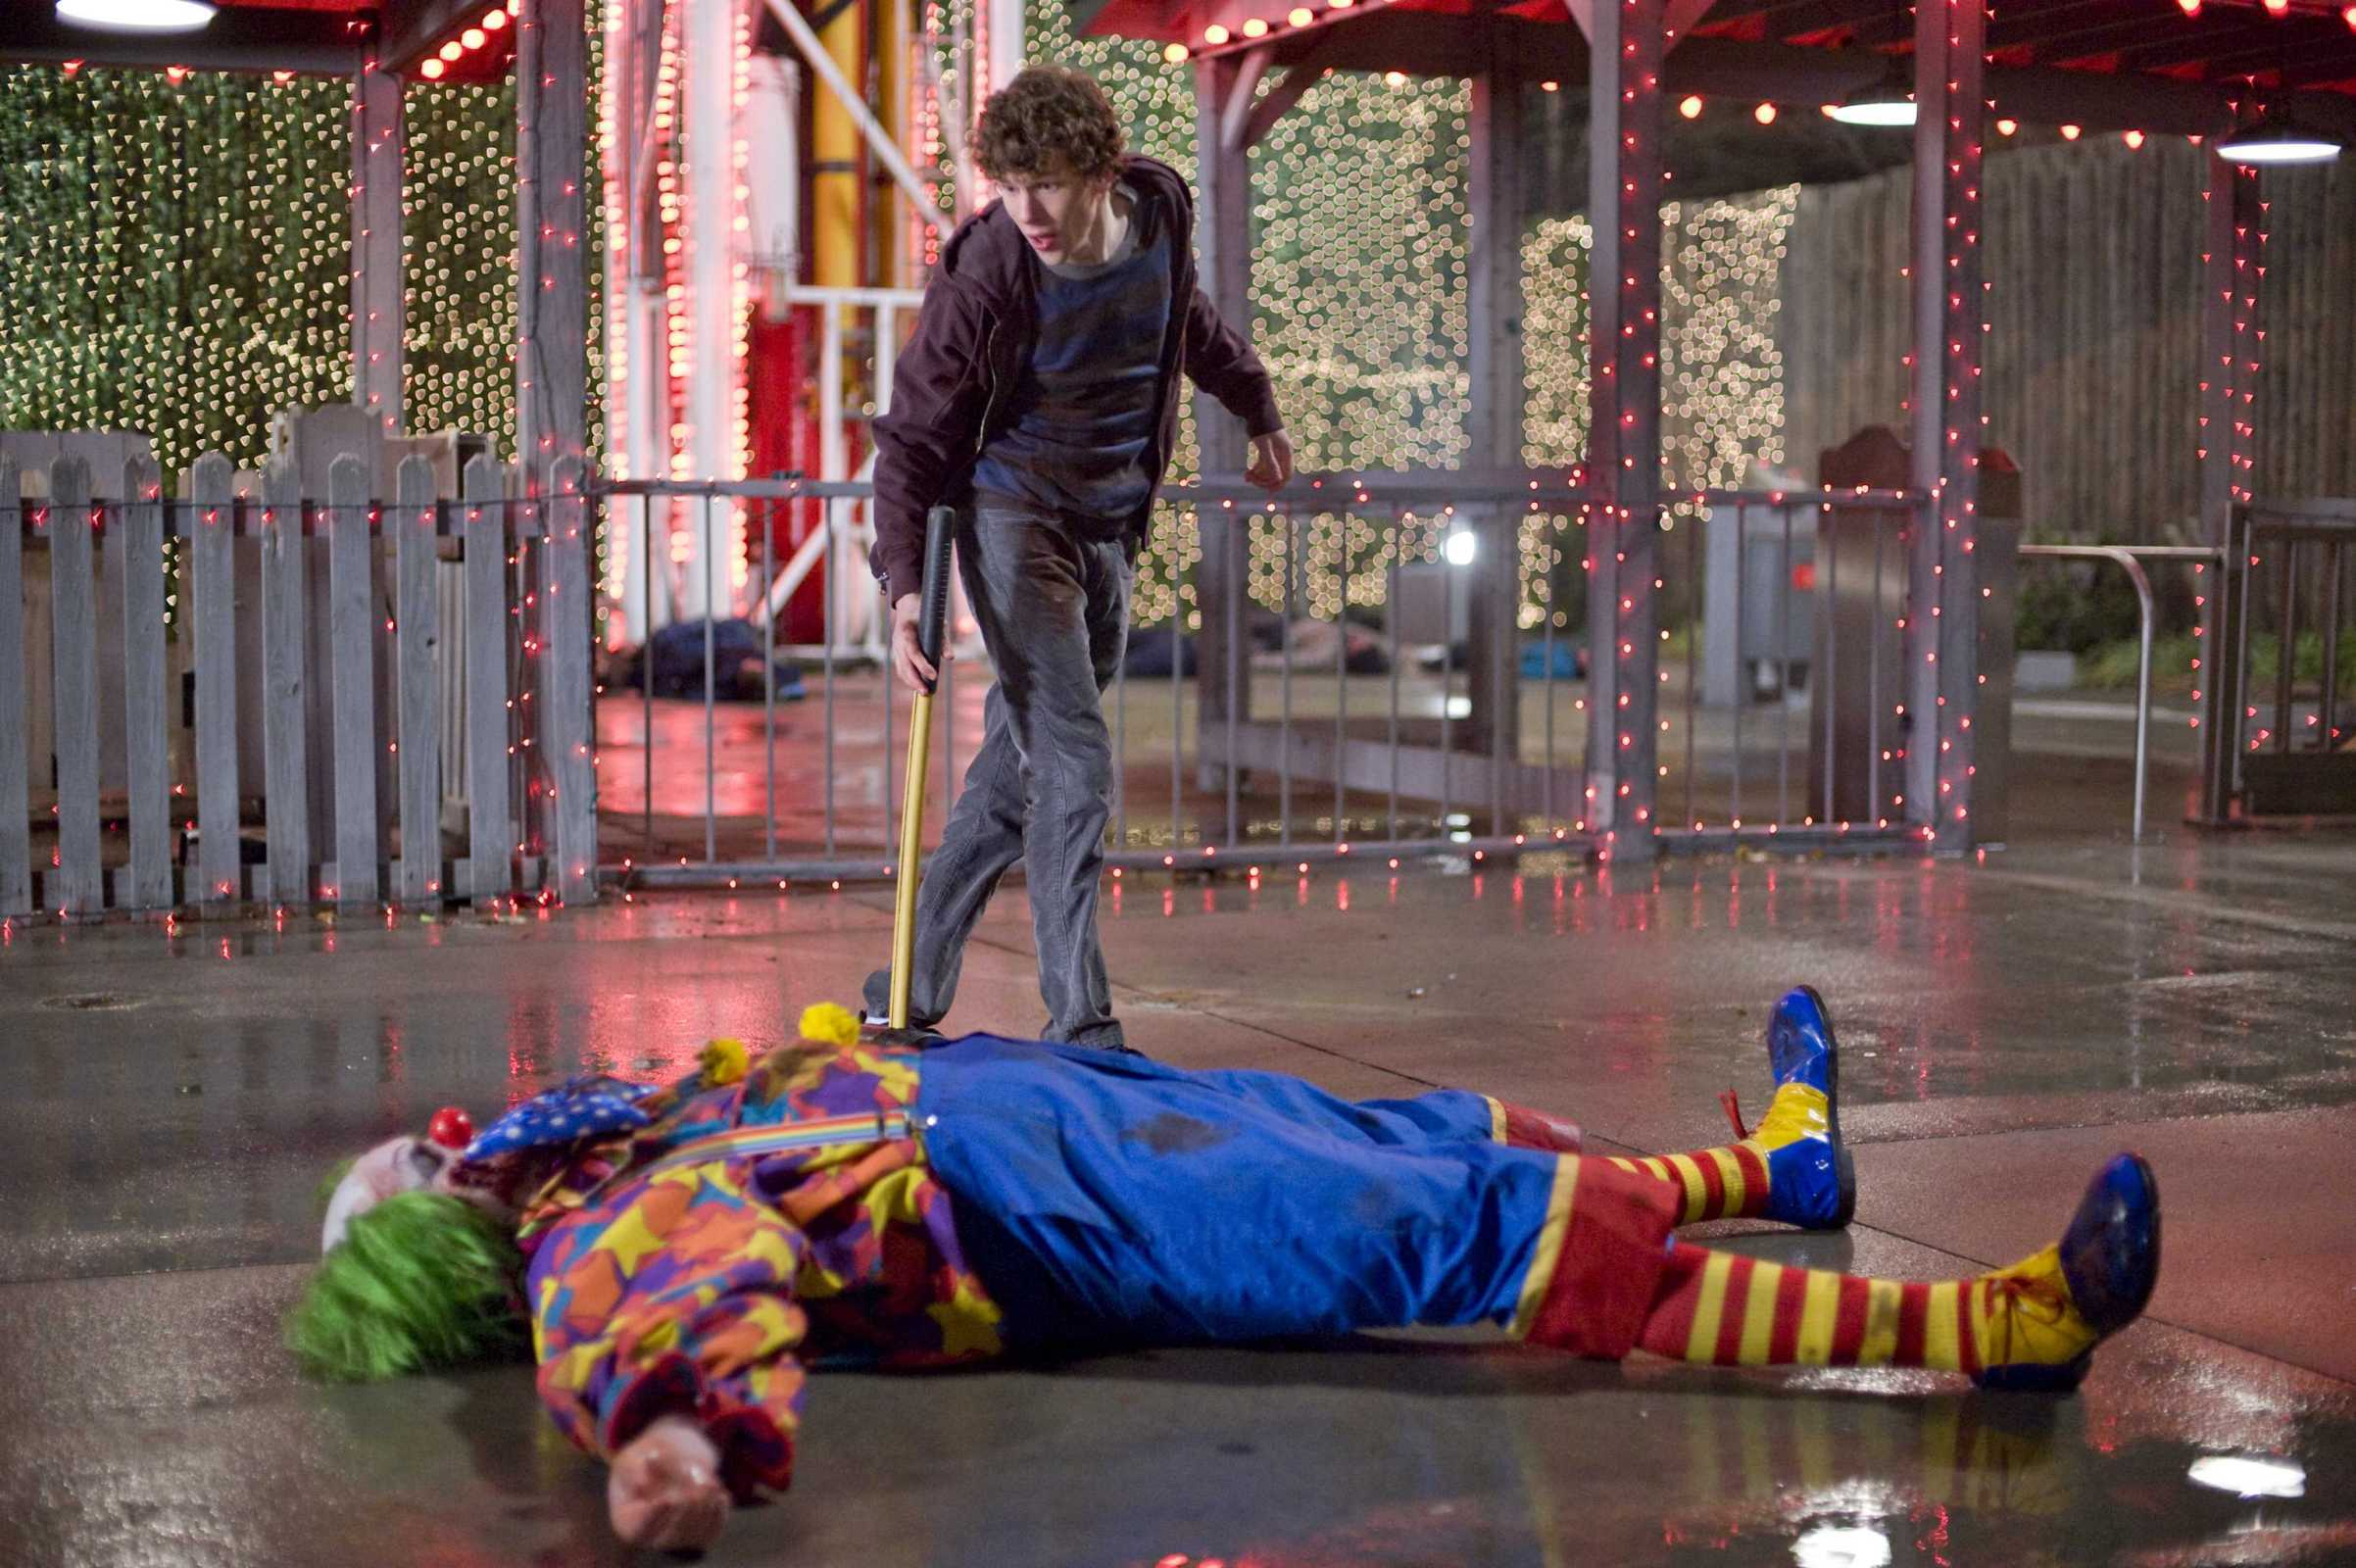 clown Zombieland jesse eisenberg HD Wallpaper